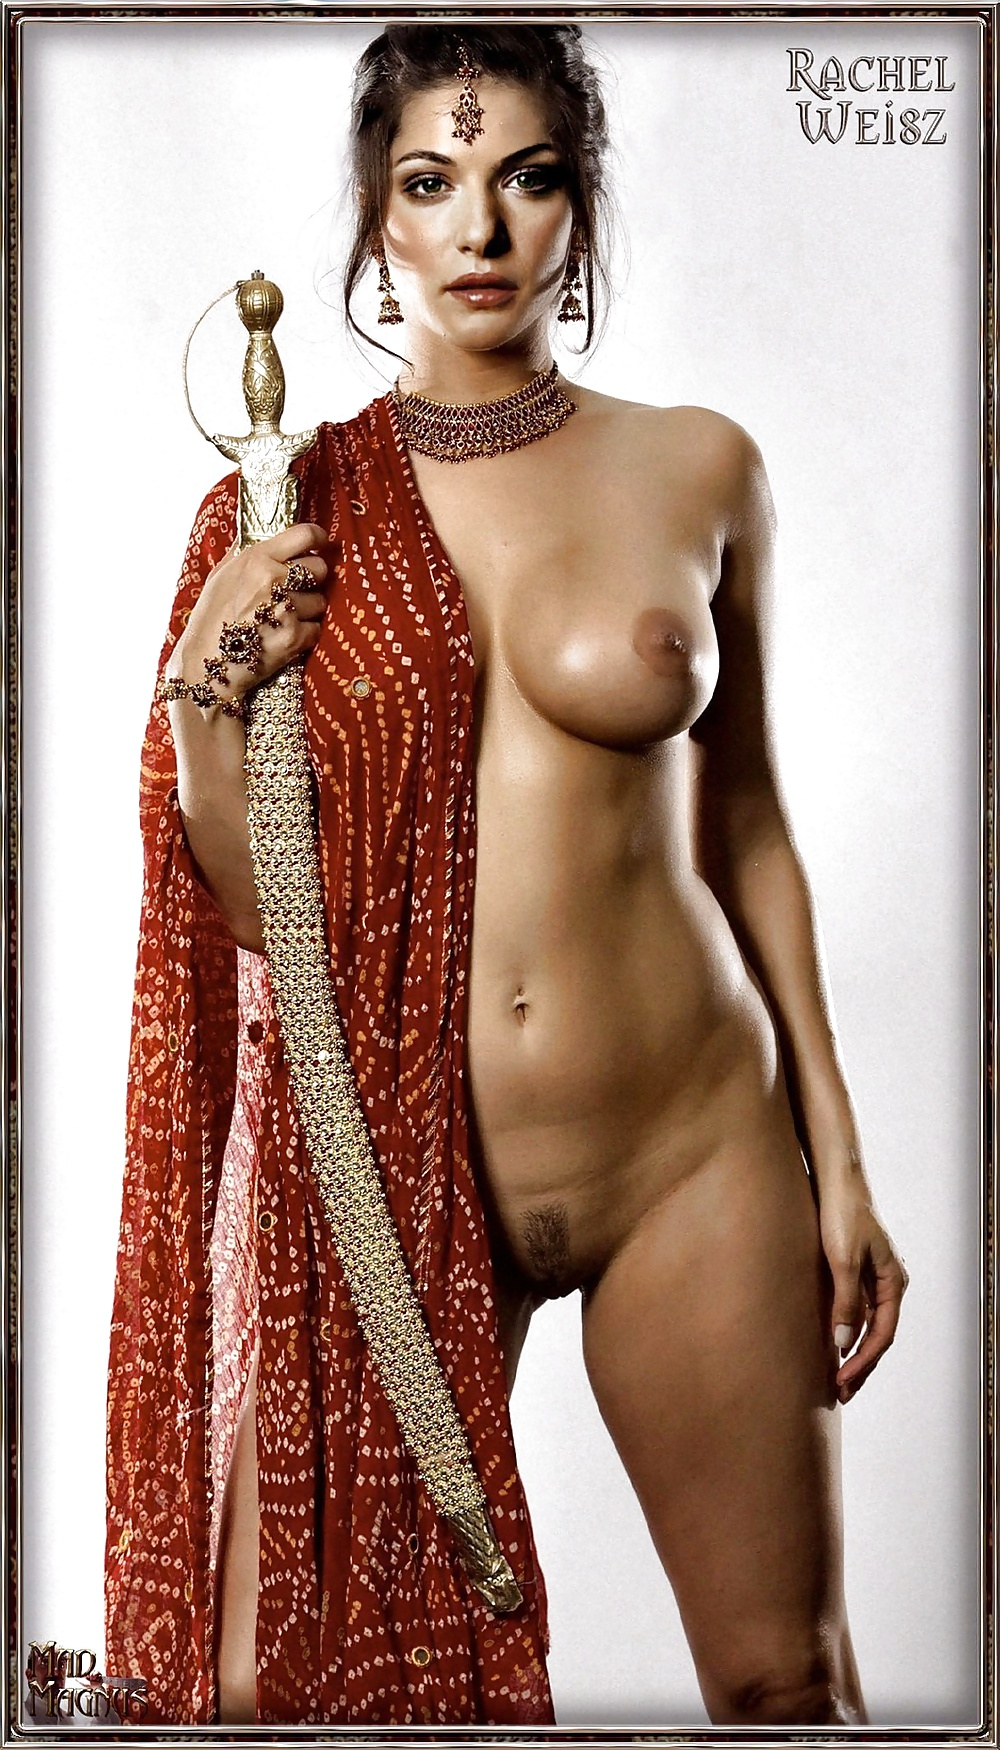 Rachel Weisz Nude Pics Fucking Cocks And Other Sexual Content